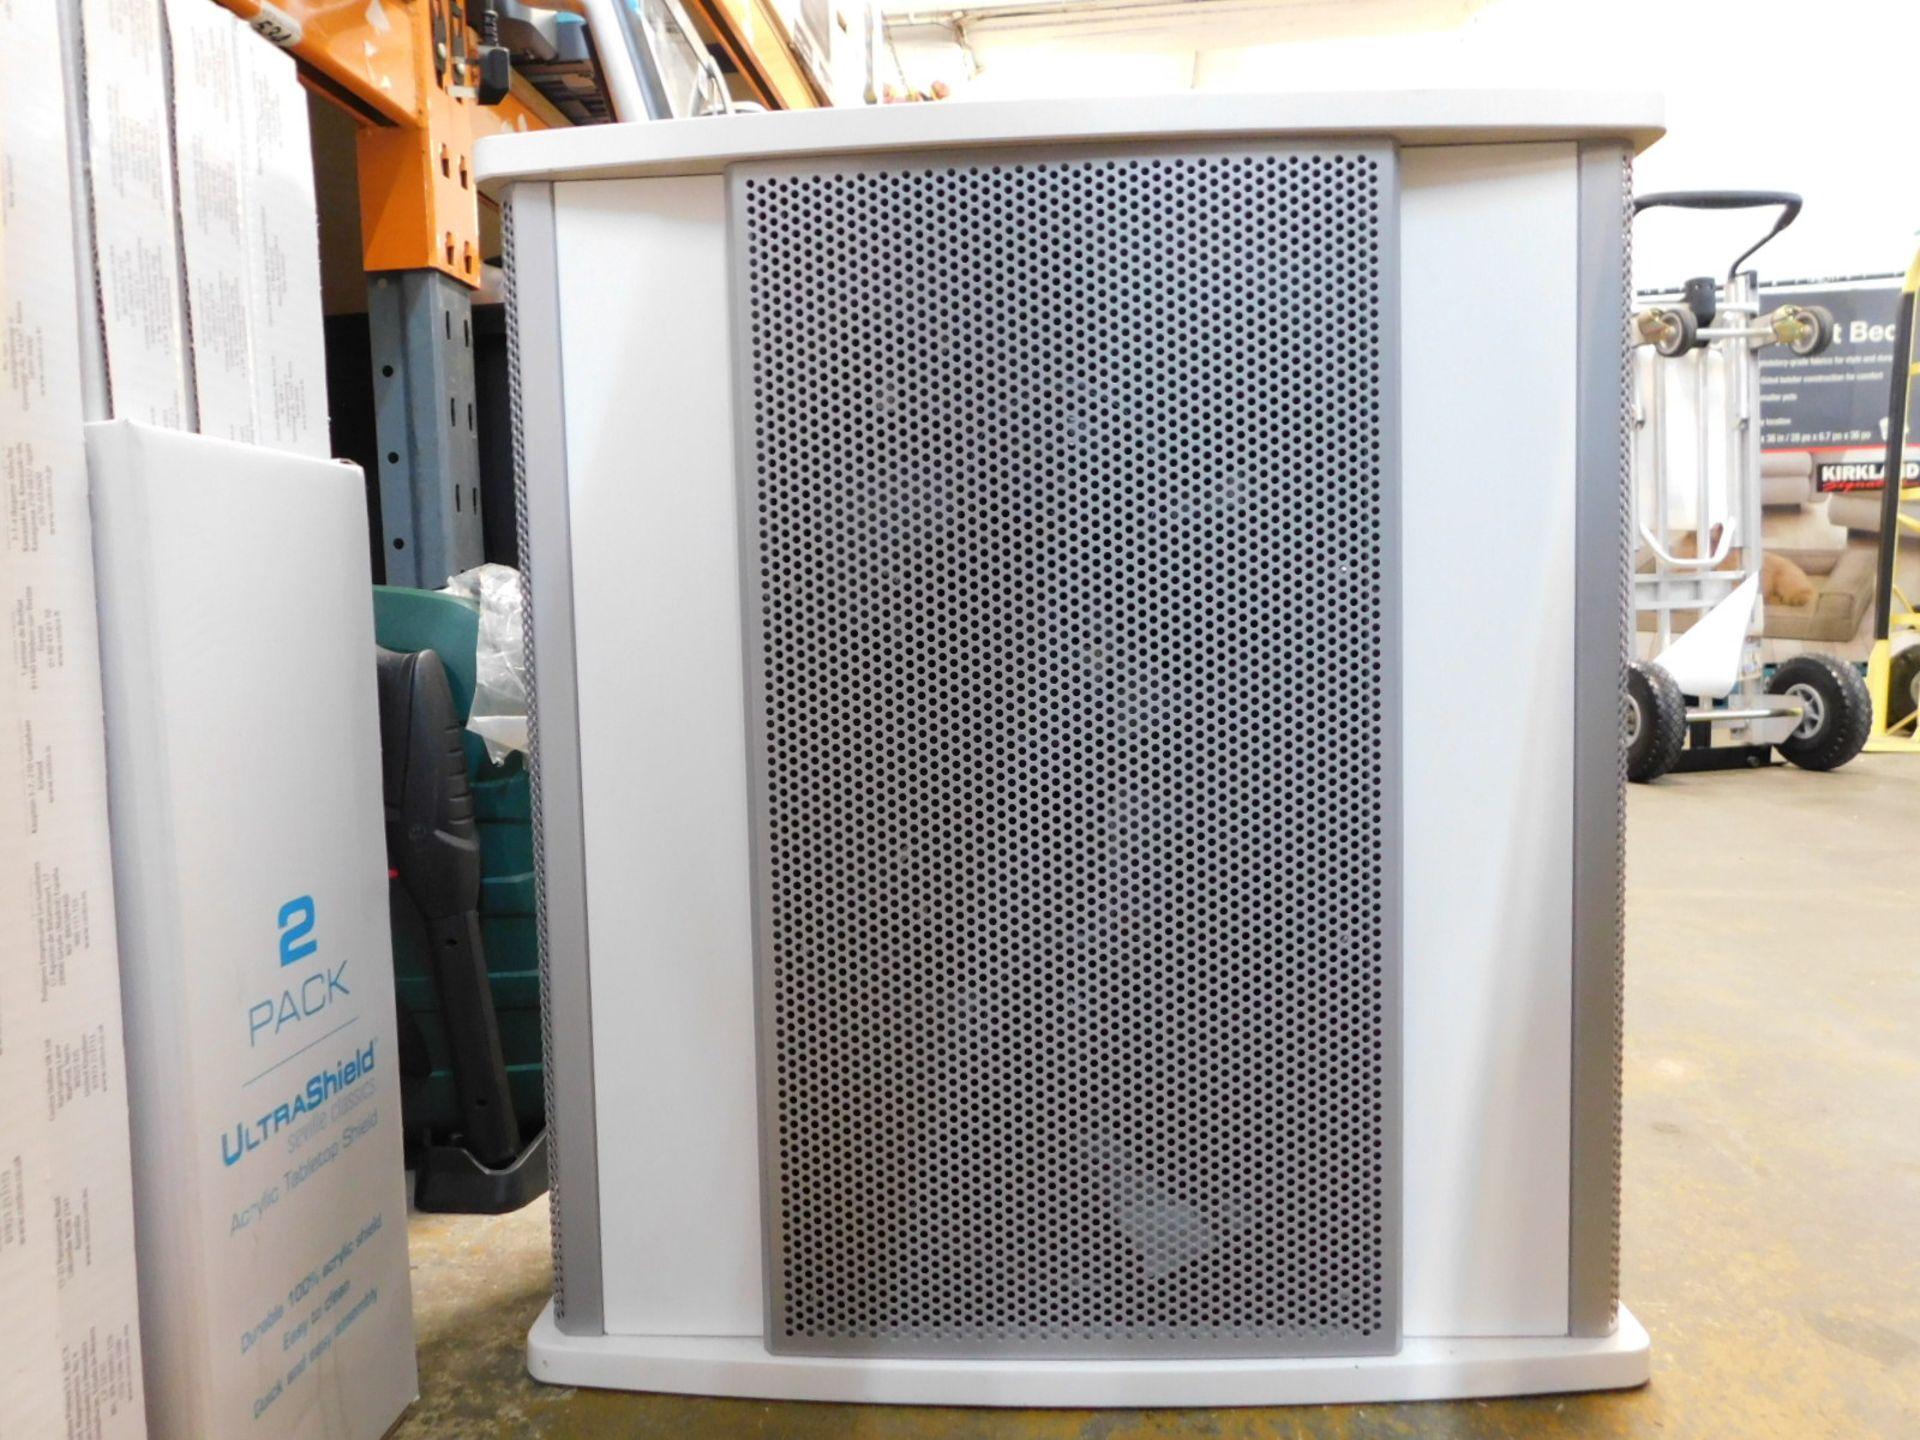 1 WOOD'S GRAN 900 AIR PURIFIER WITH 4 SPEED FILTRATION, AIR CLEANER RRP £299